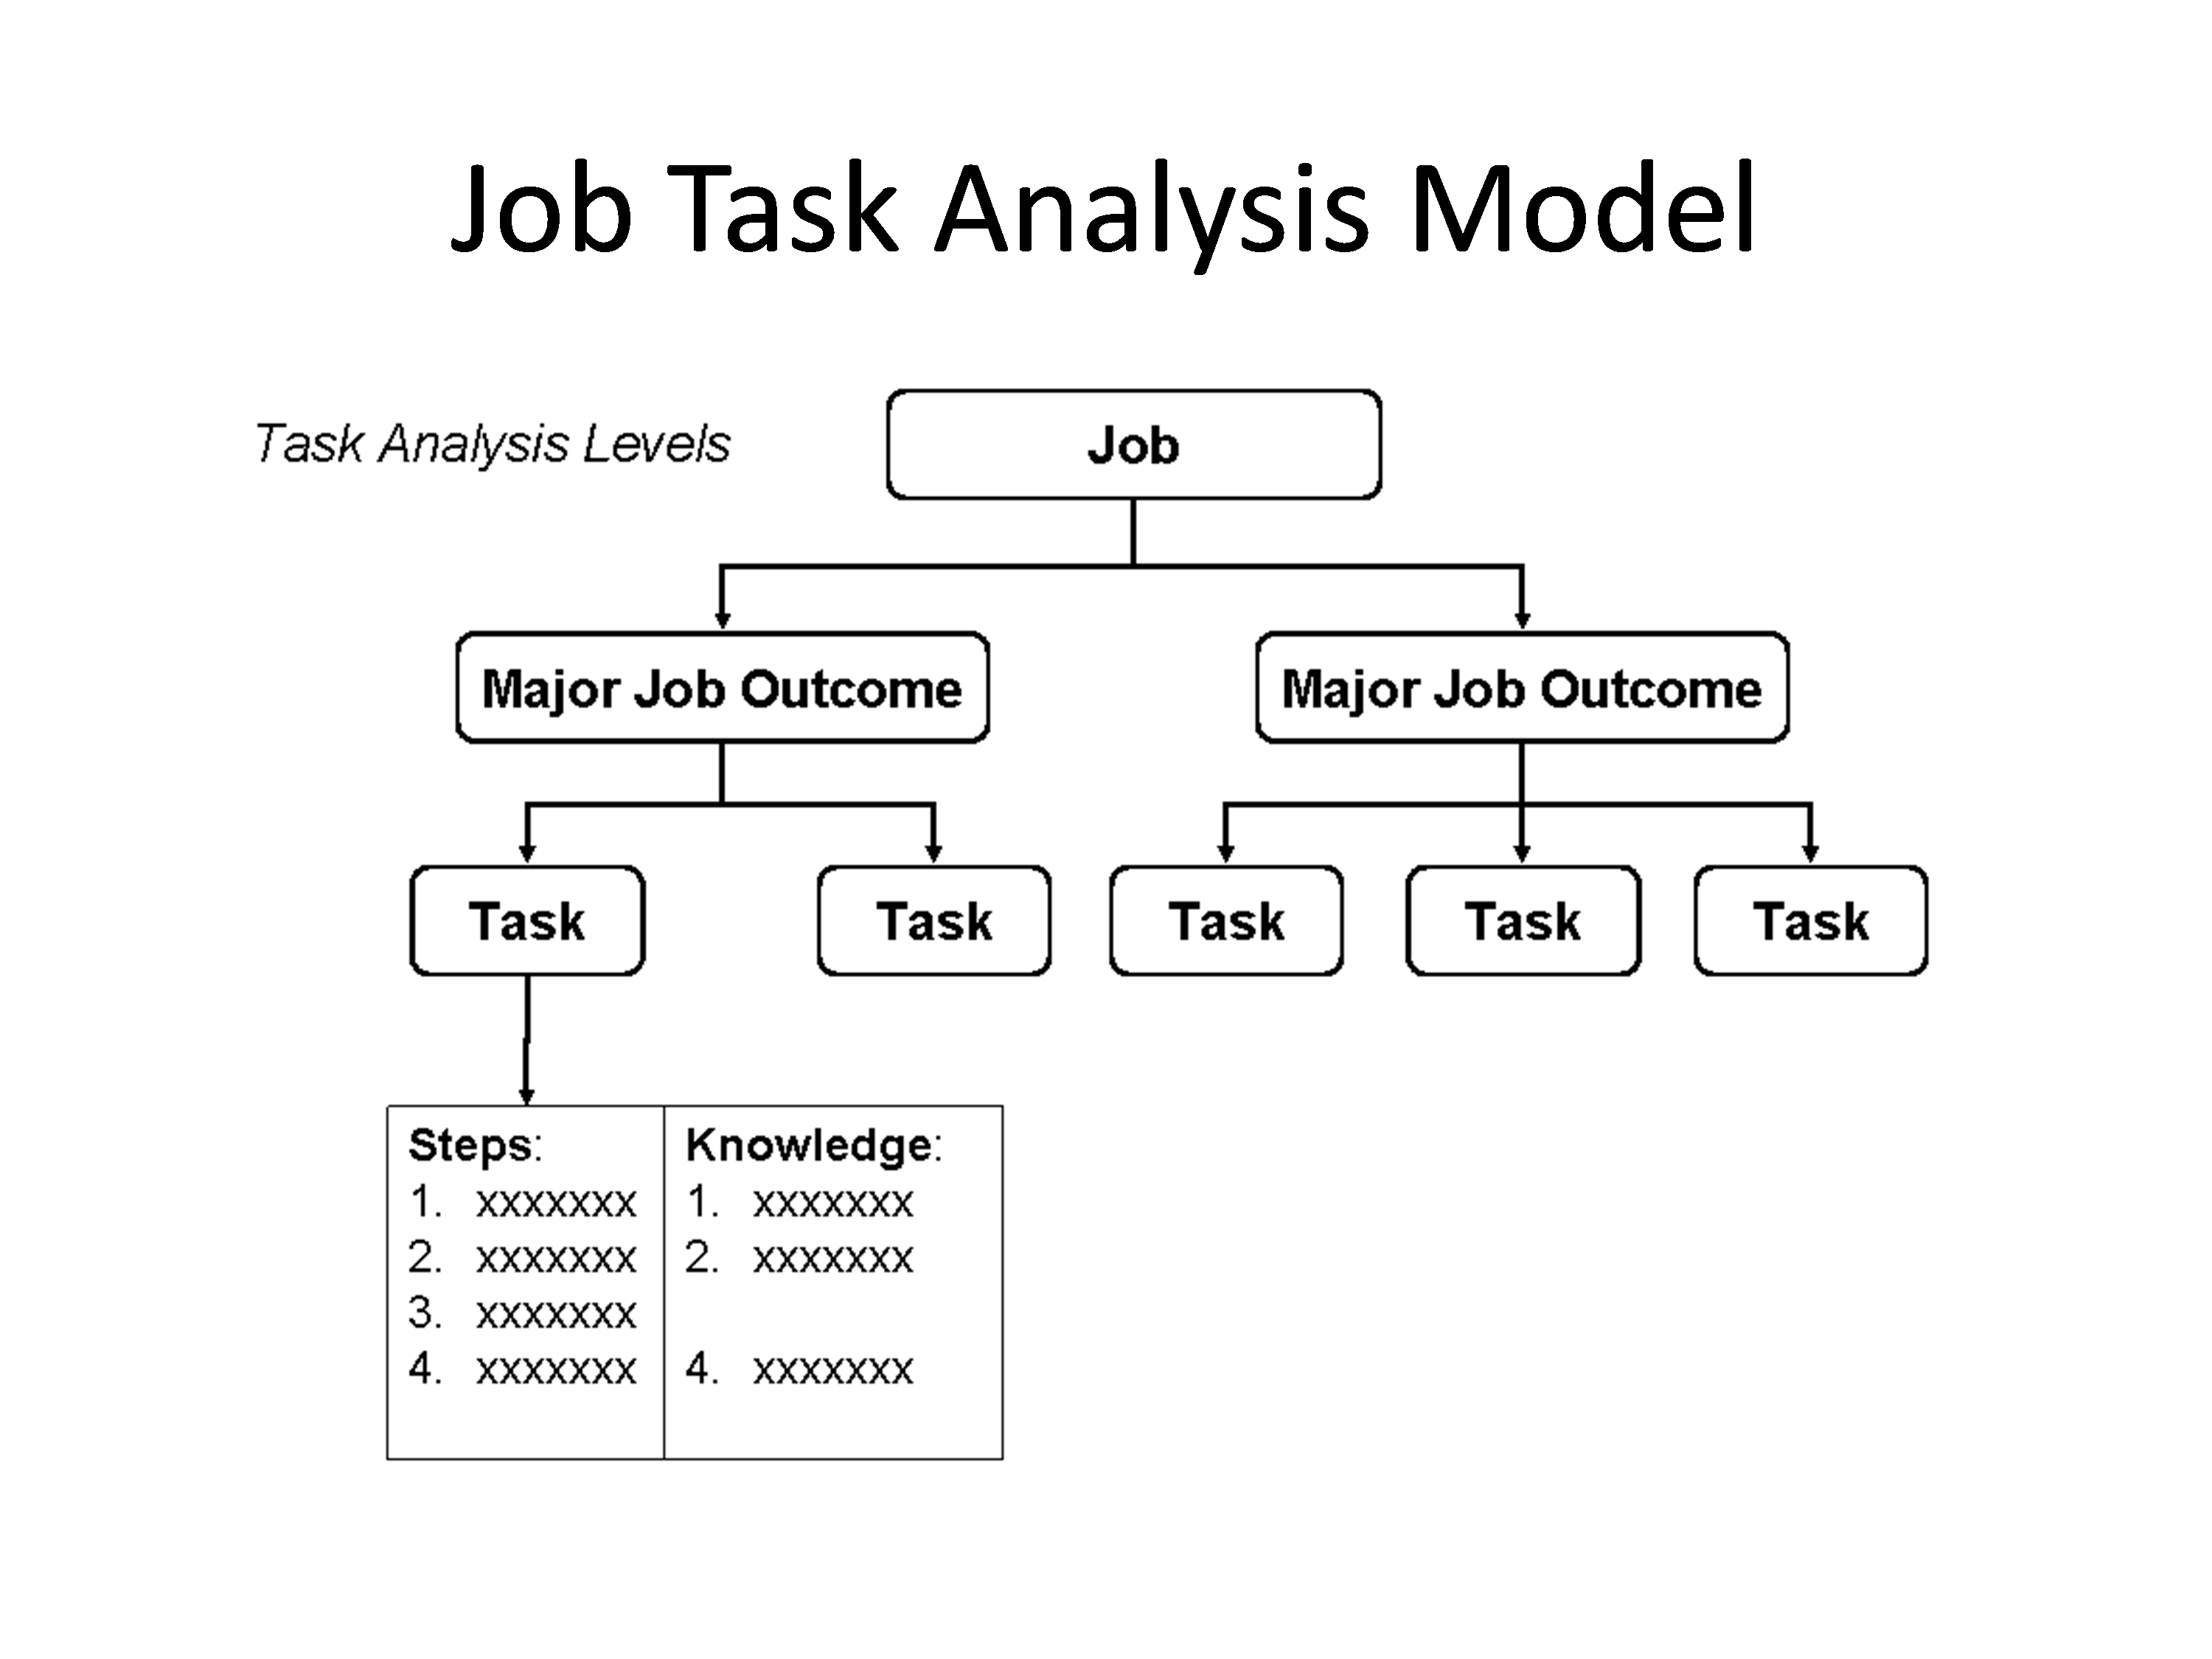 atd los angeles training needs assessment versus performance to analyze the training audience we also rely on two key processes skill gap analysis and learner analysis learner analysis is the process of defining